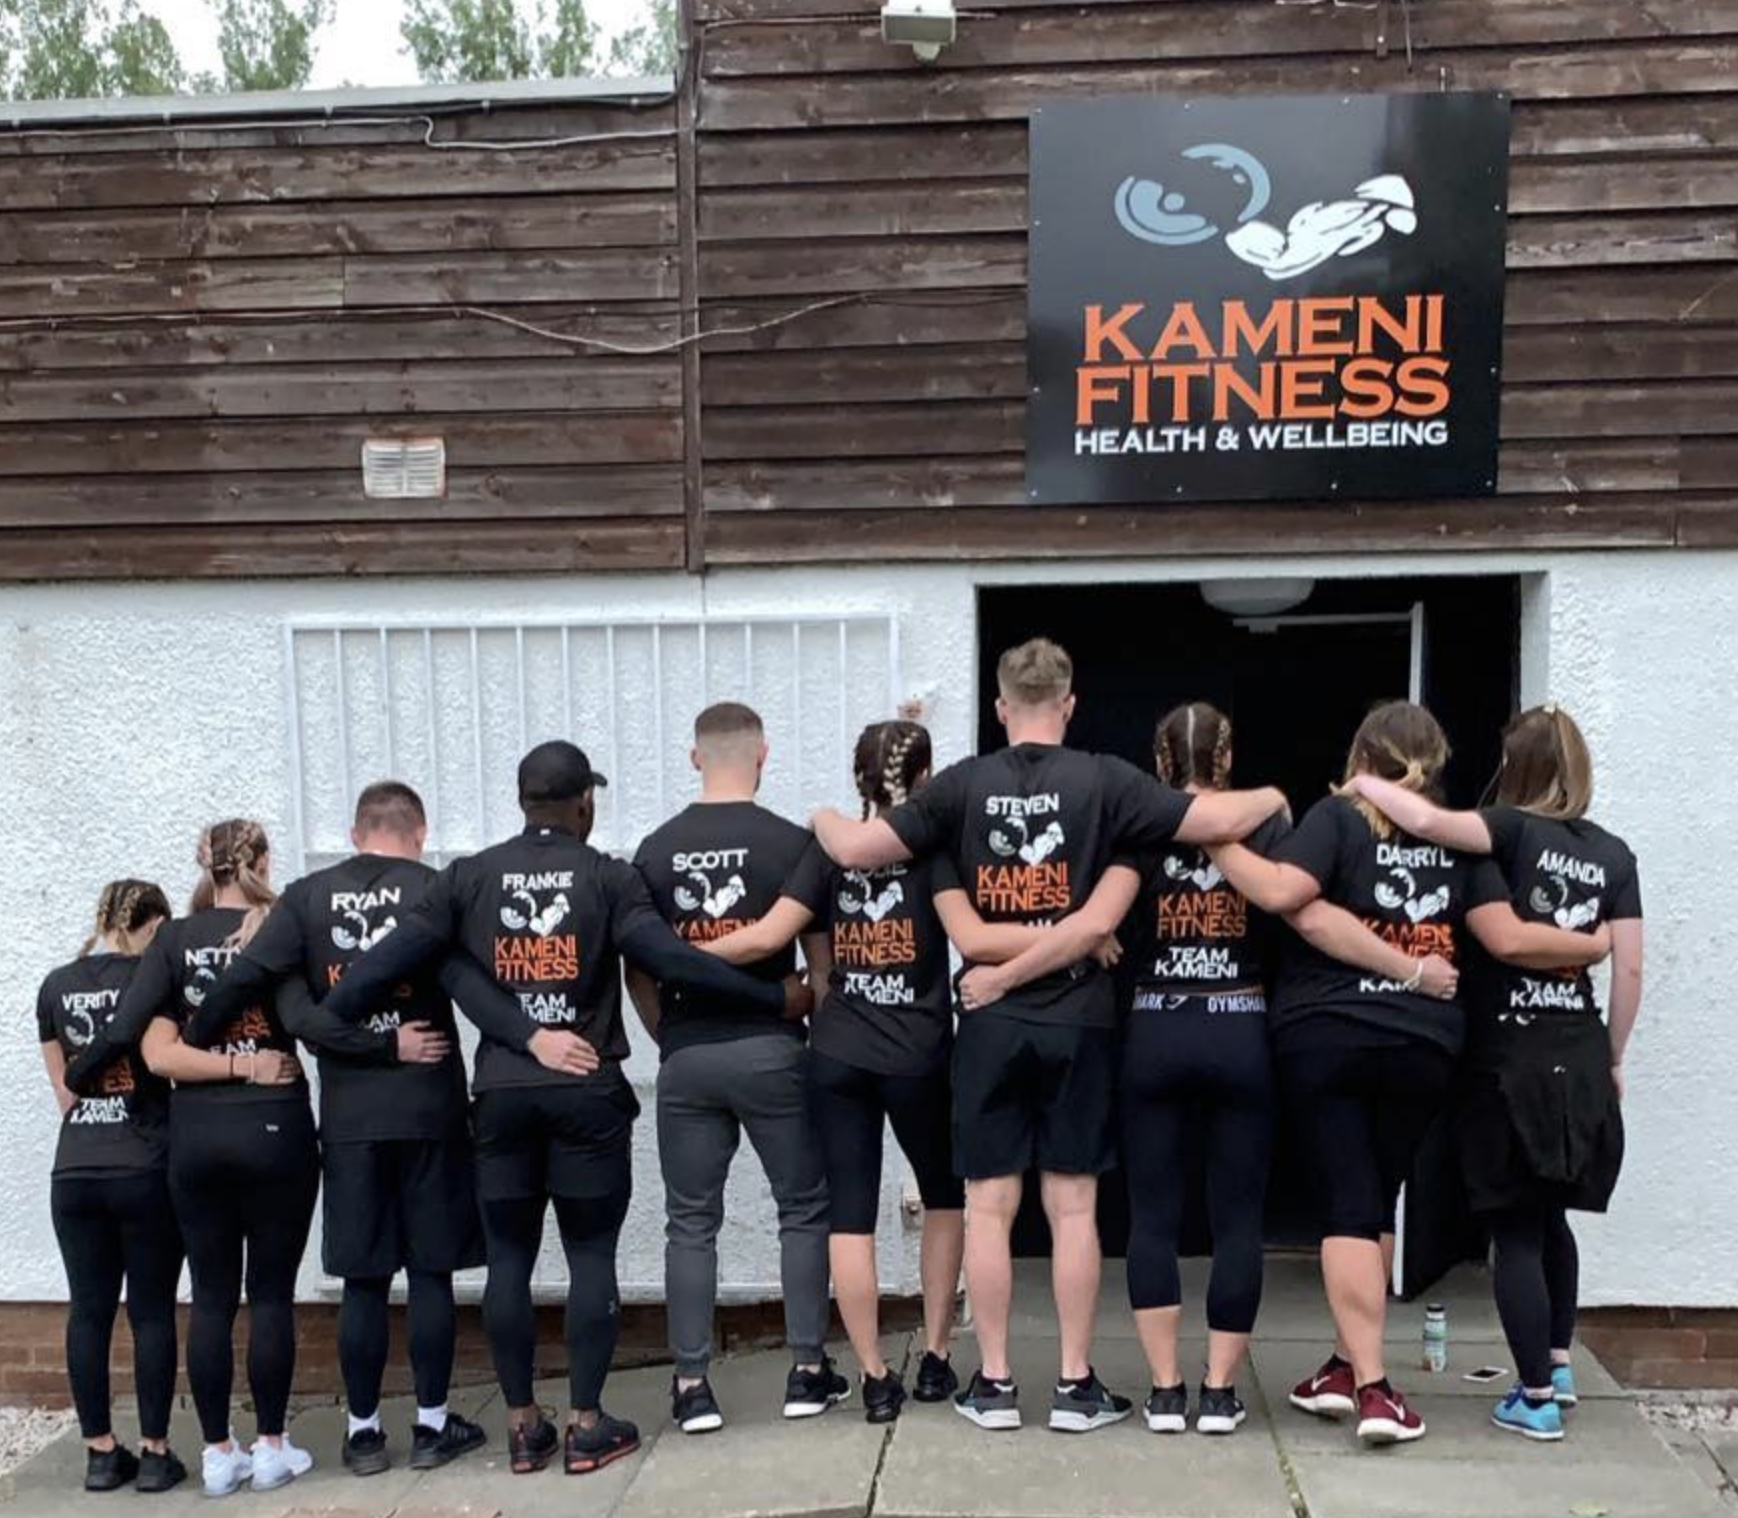 Group standing with their back to the camera wearing branded Kamei Fitness tshirts outside Kameni Fitness gym